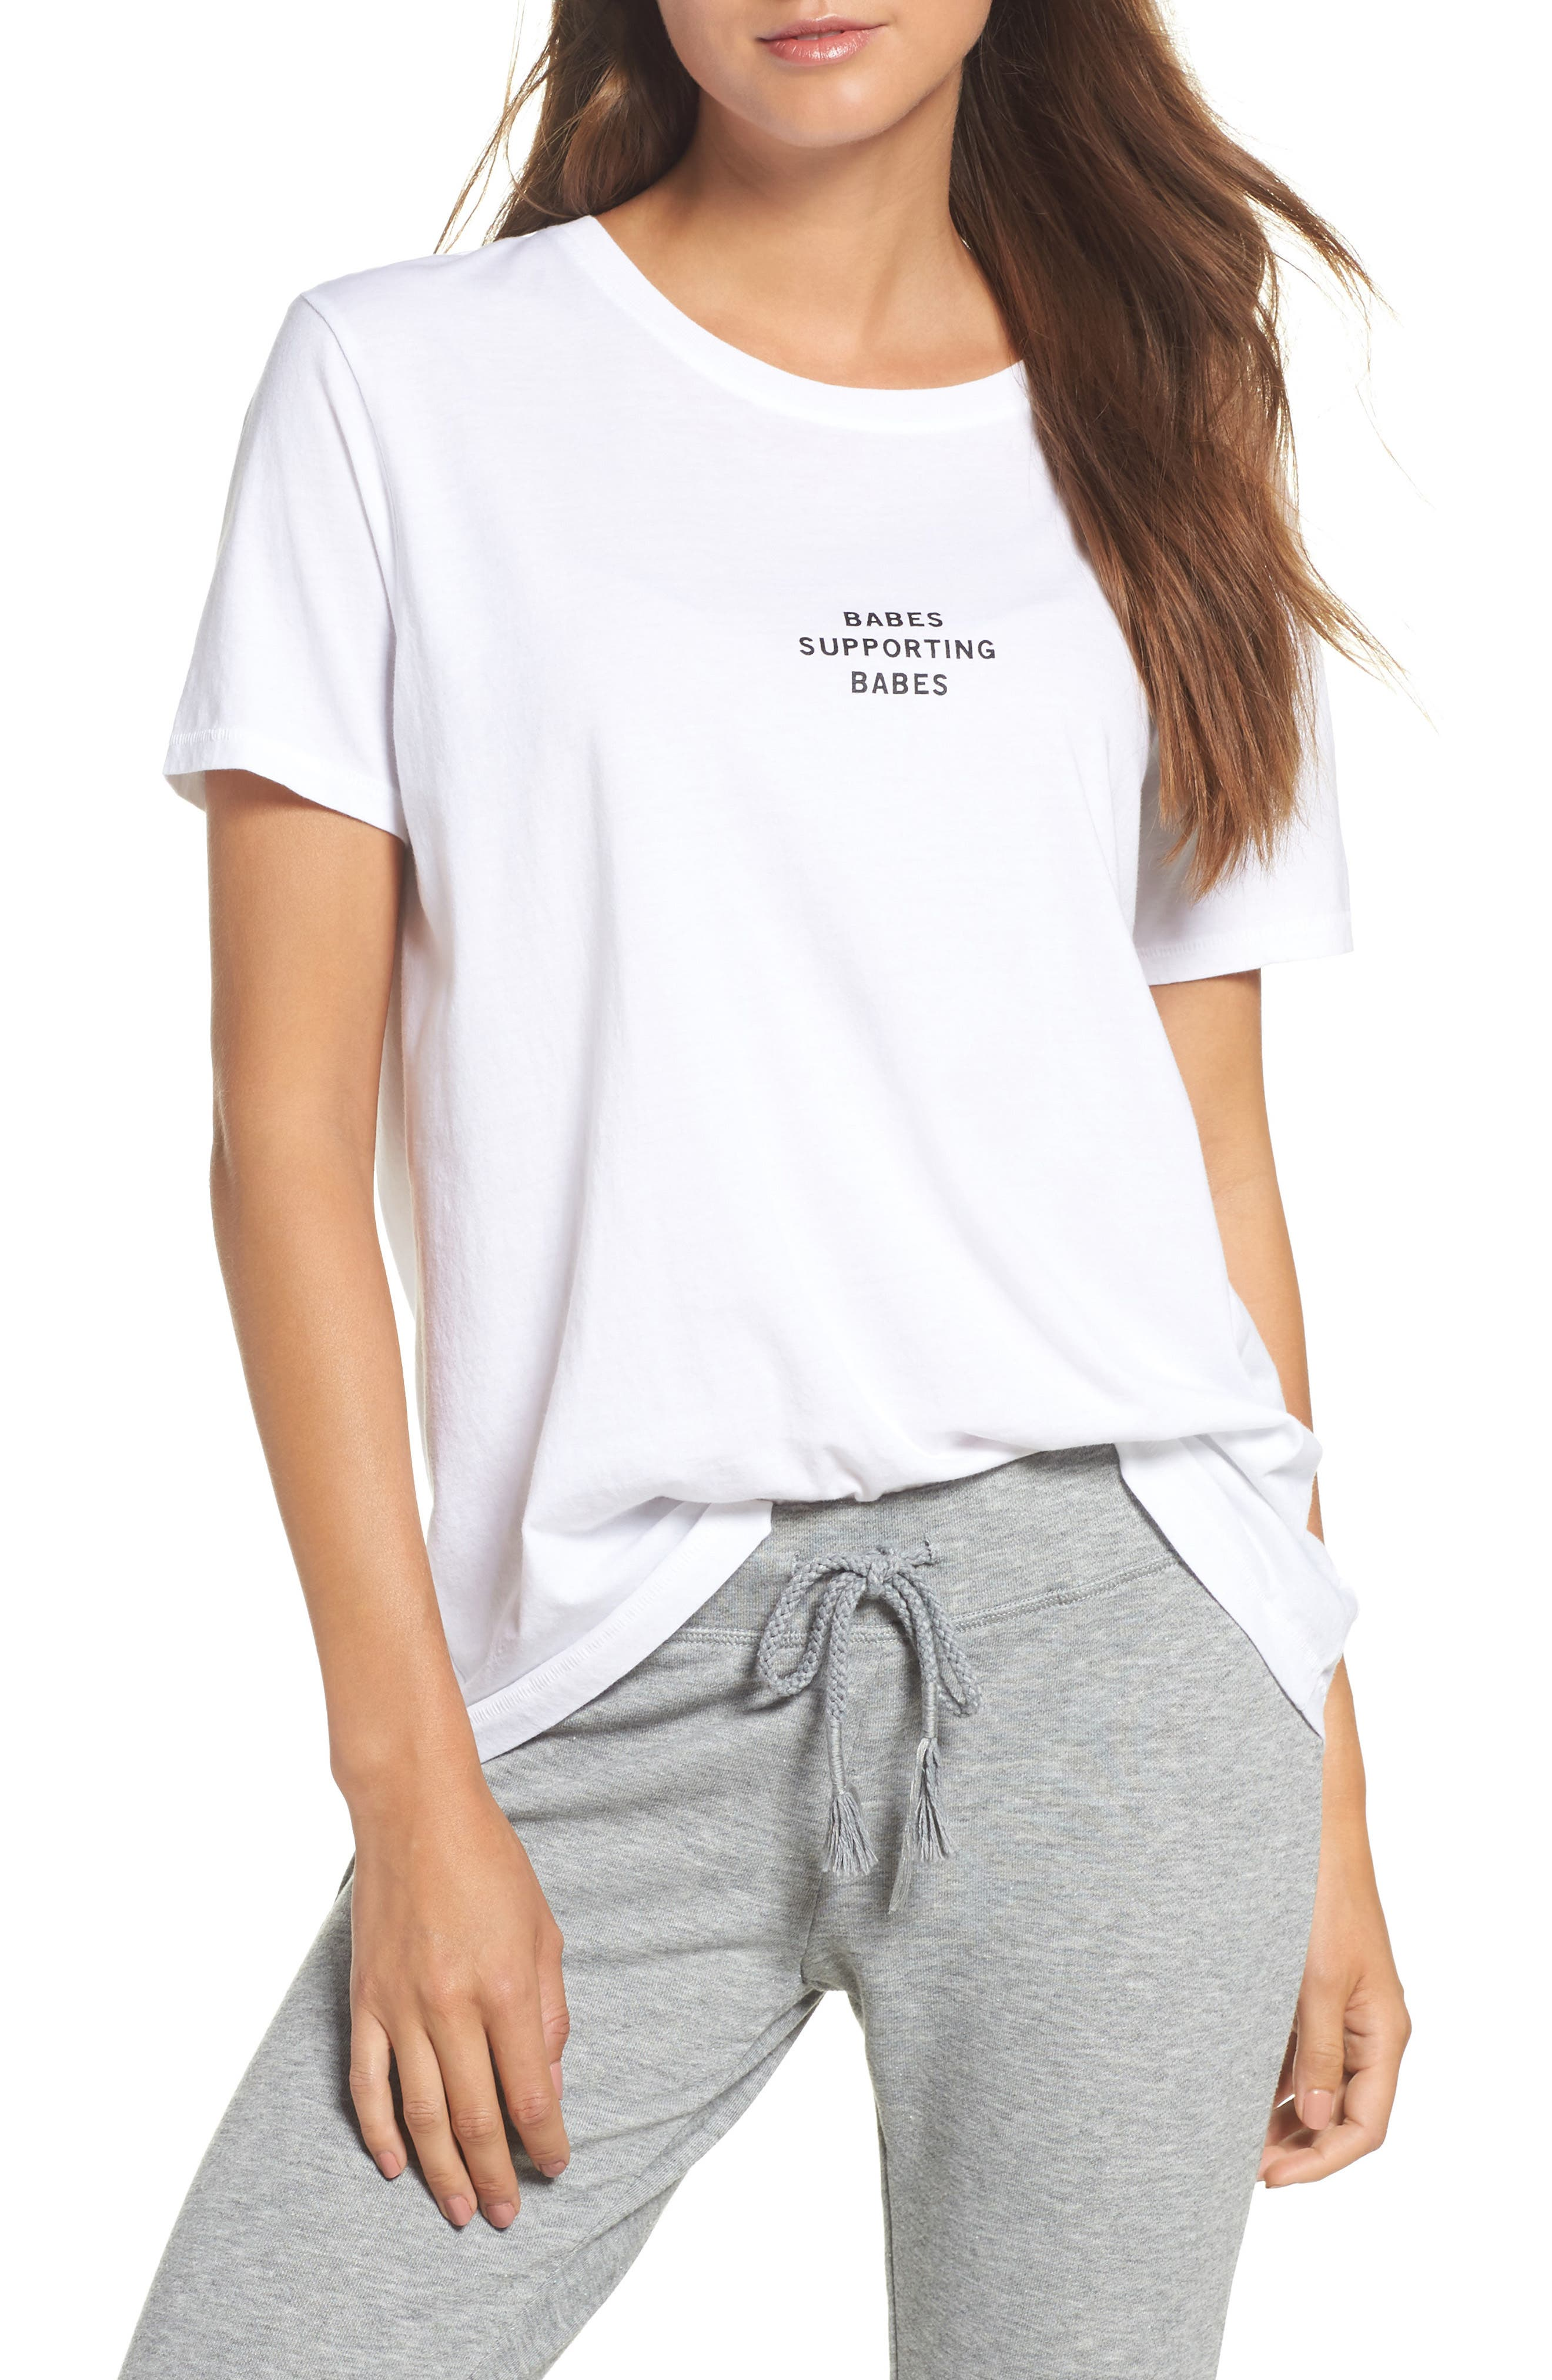 Babes Supporting Babes Tee,                         Main,                         color, White/ Black